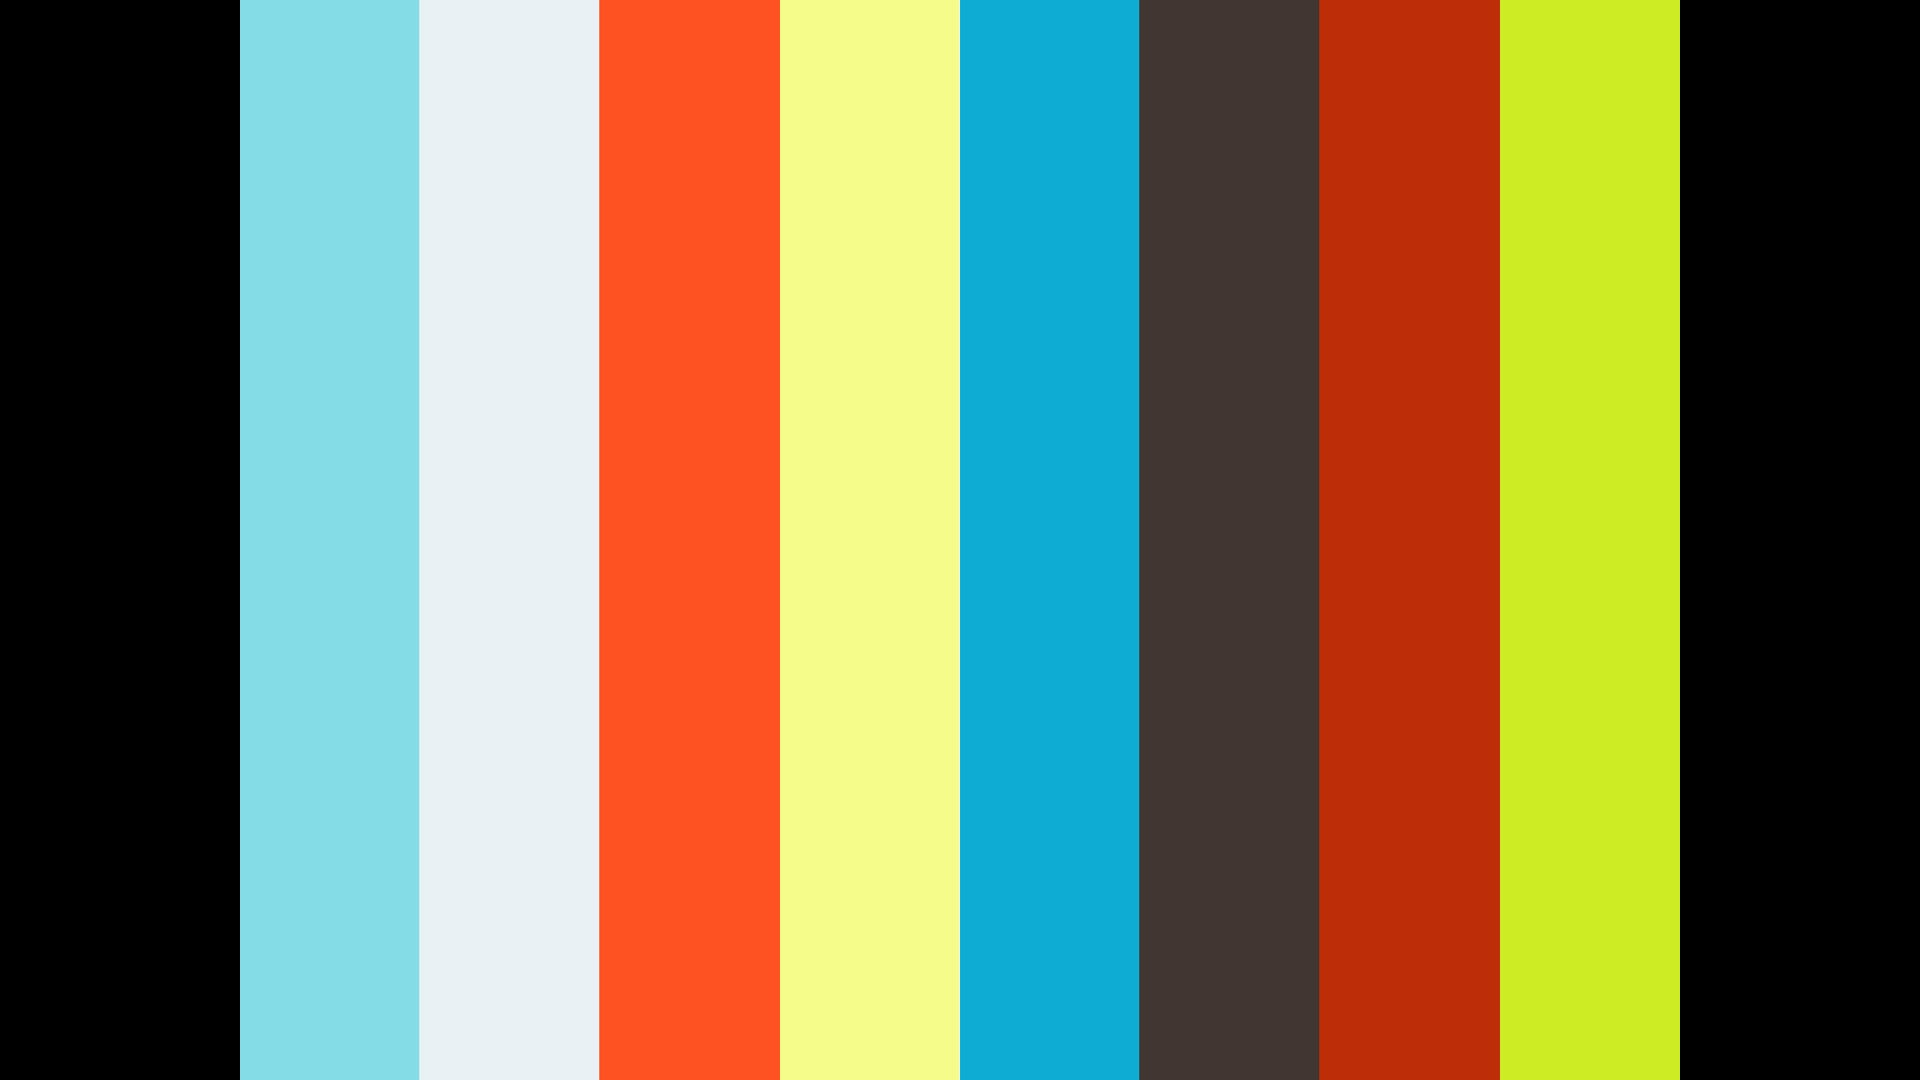 Introduction of Silvy Chakkalakal by Anna Jäger [5]